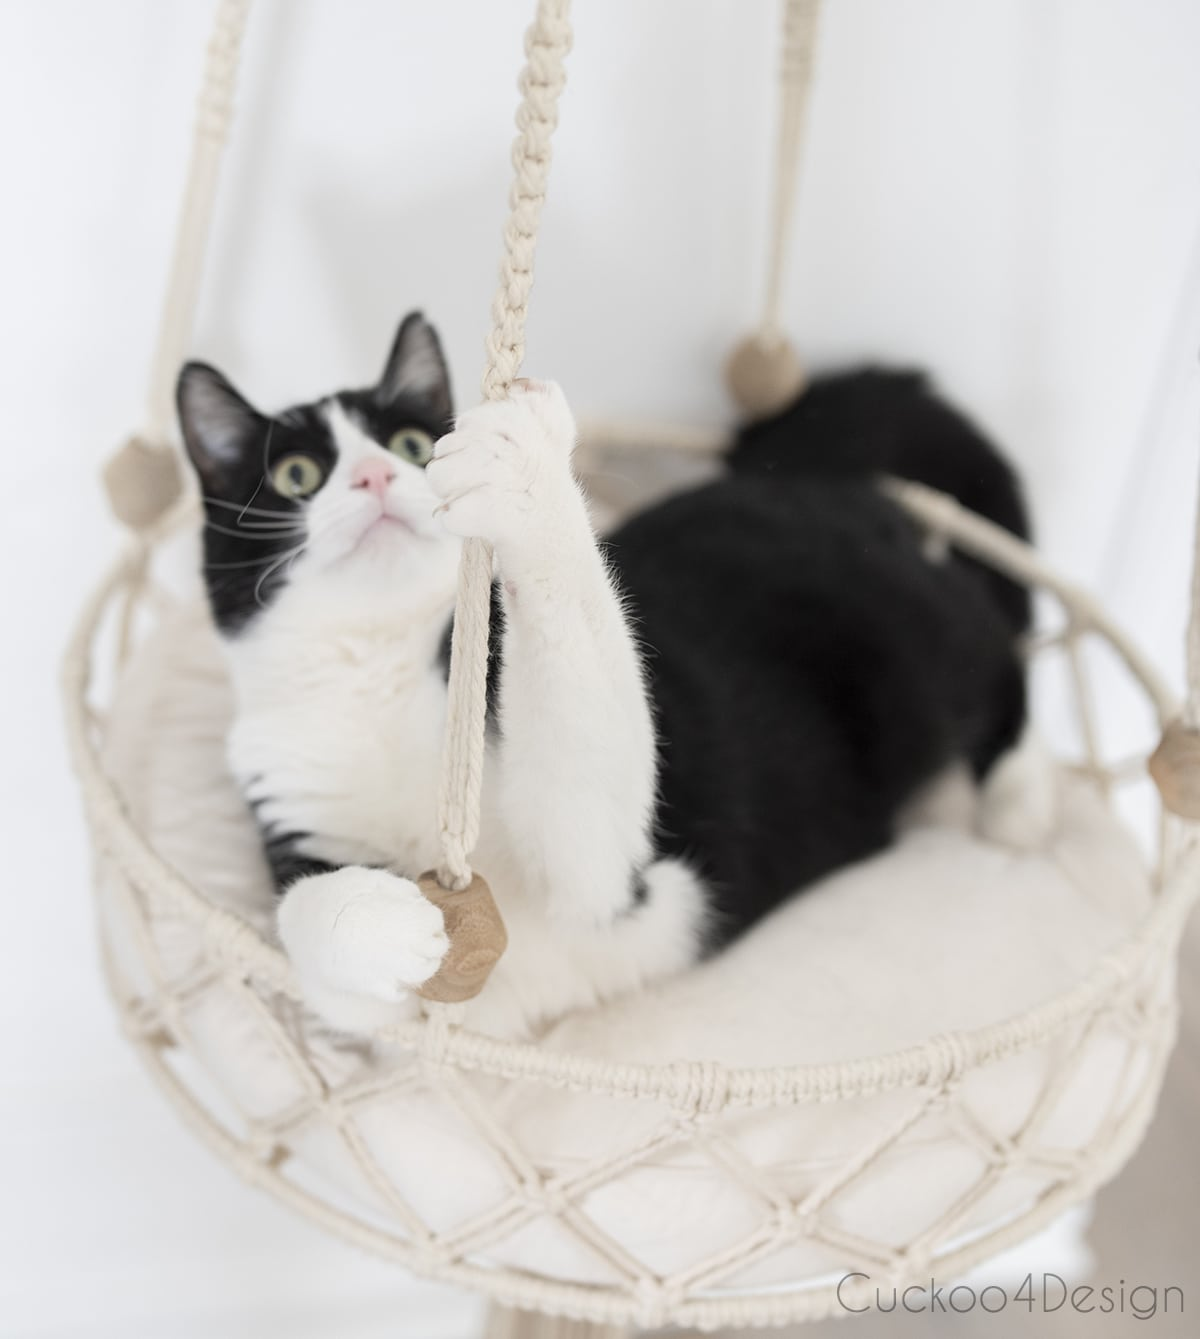 cat holding on the hanging strands on hanging macrame bed